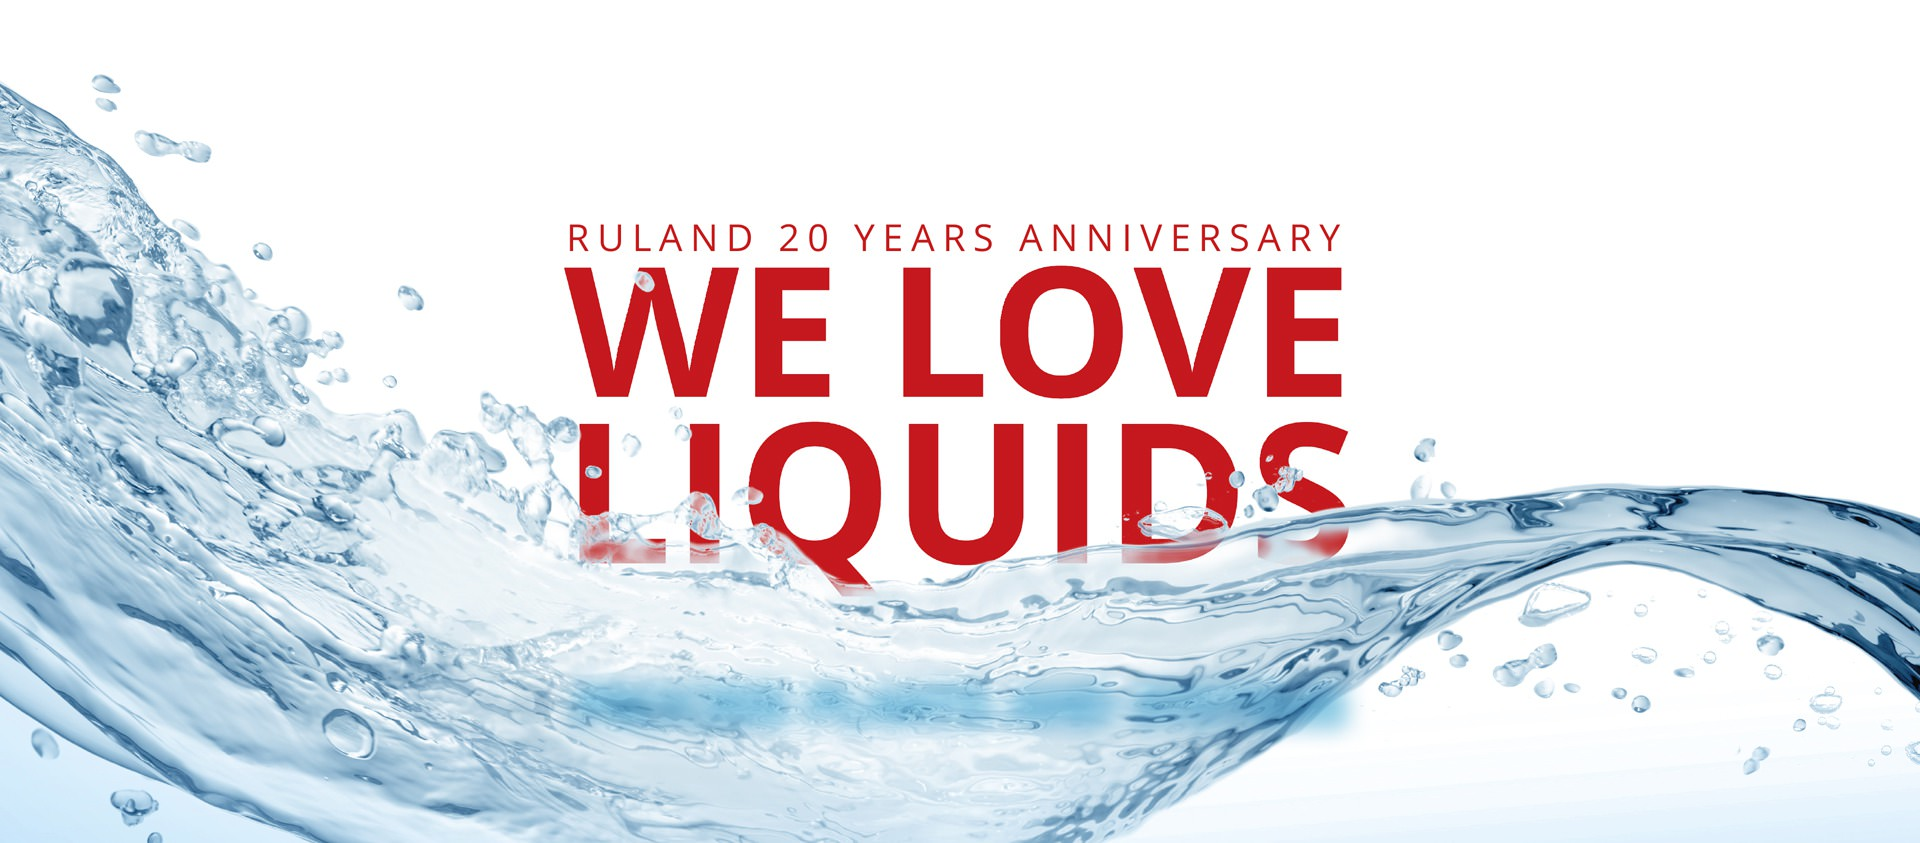 Grafik We love liquids, Ruland 20 years anniversaire mit Welle